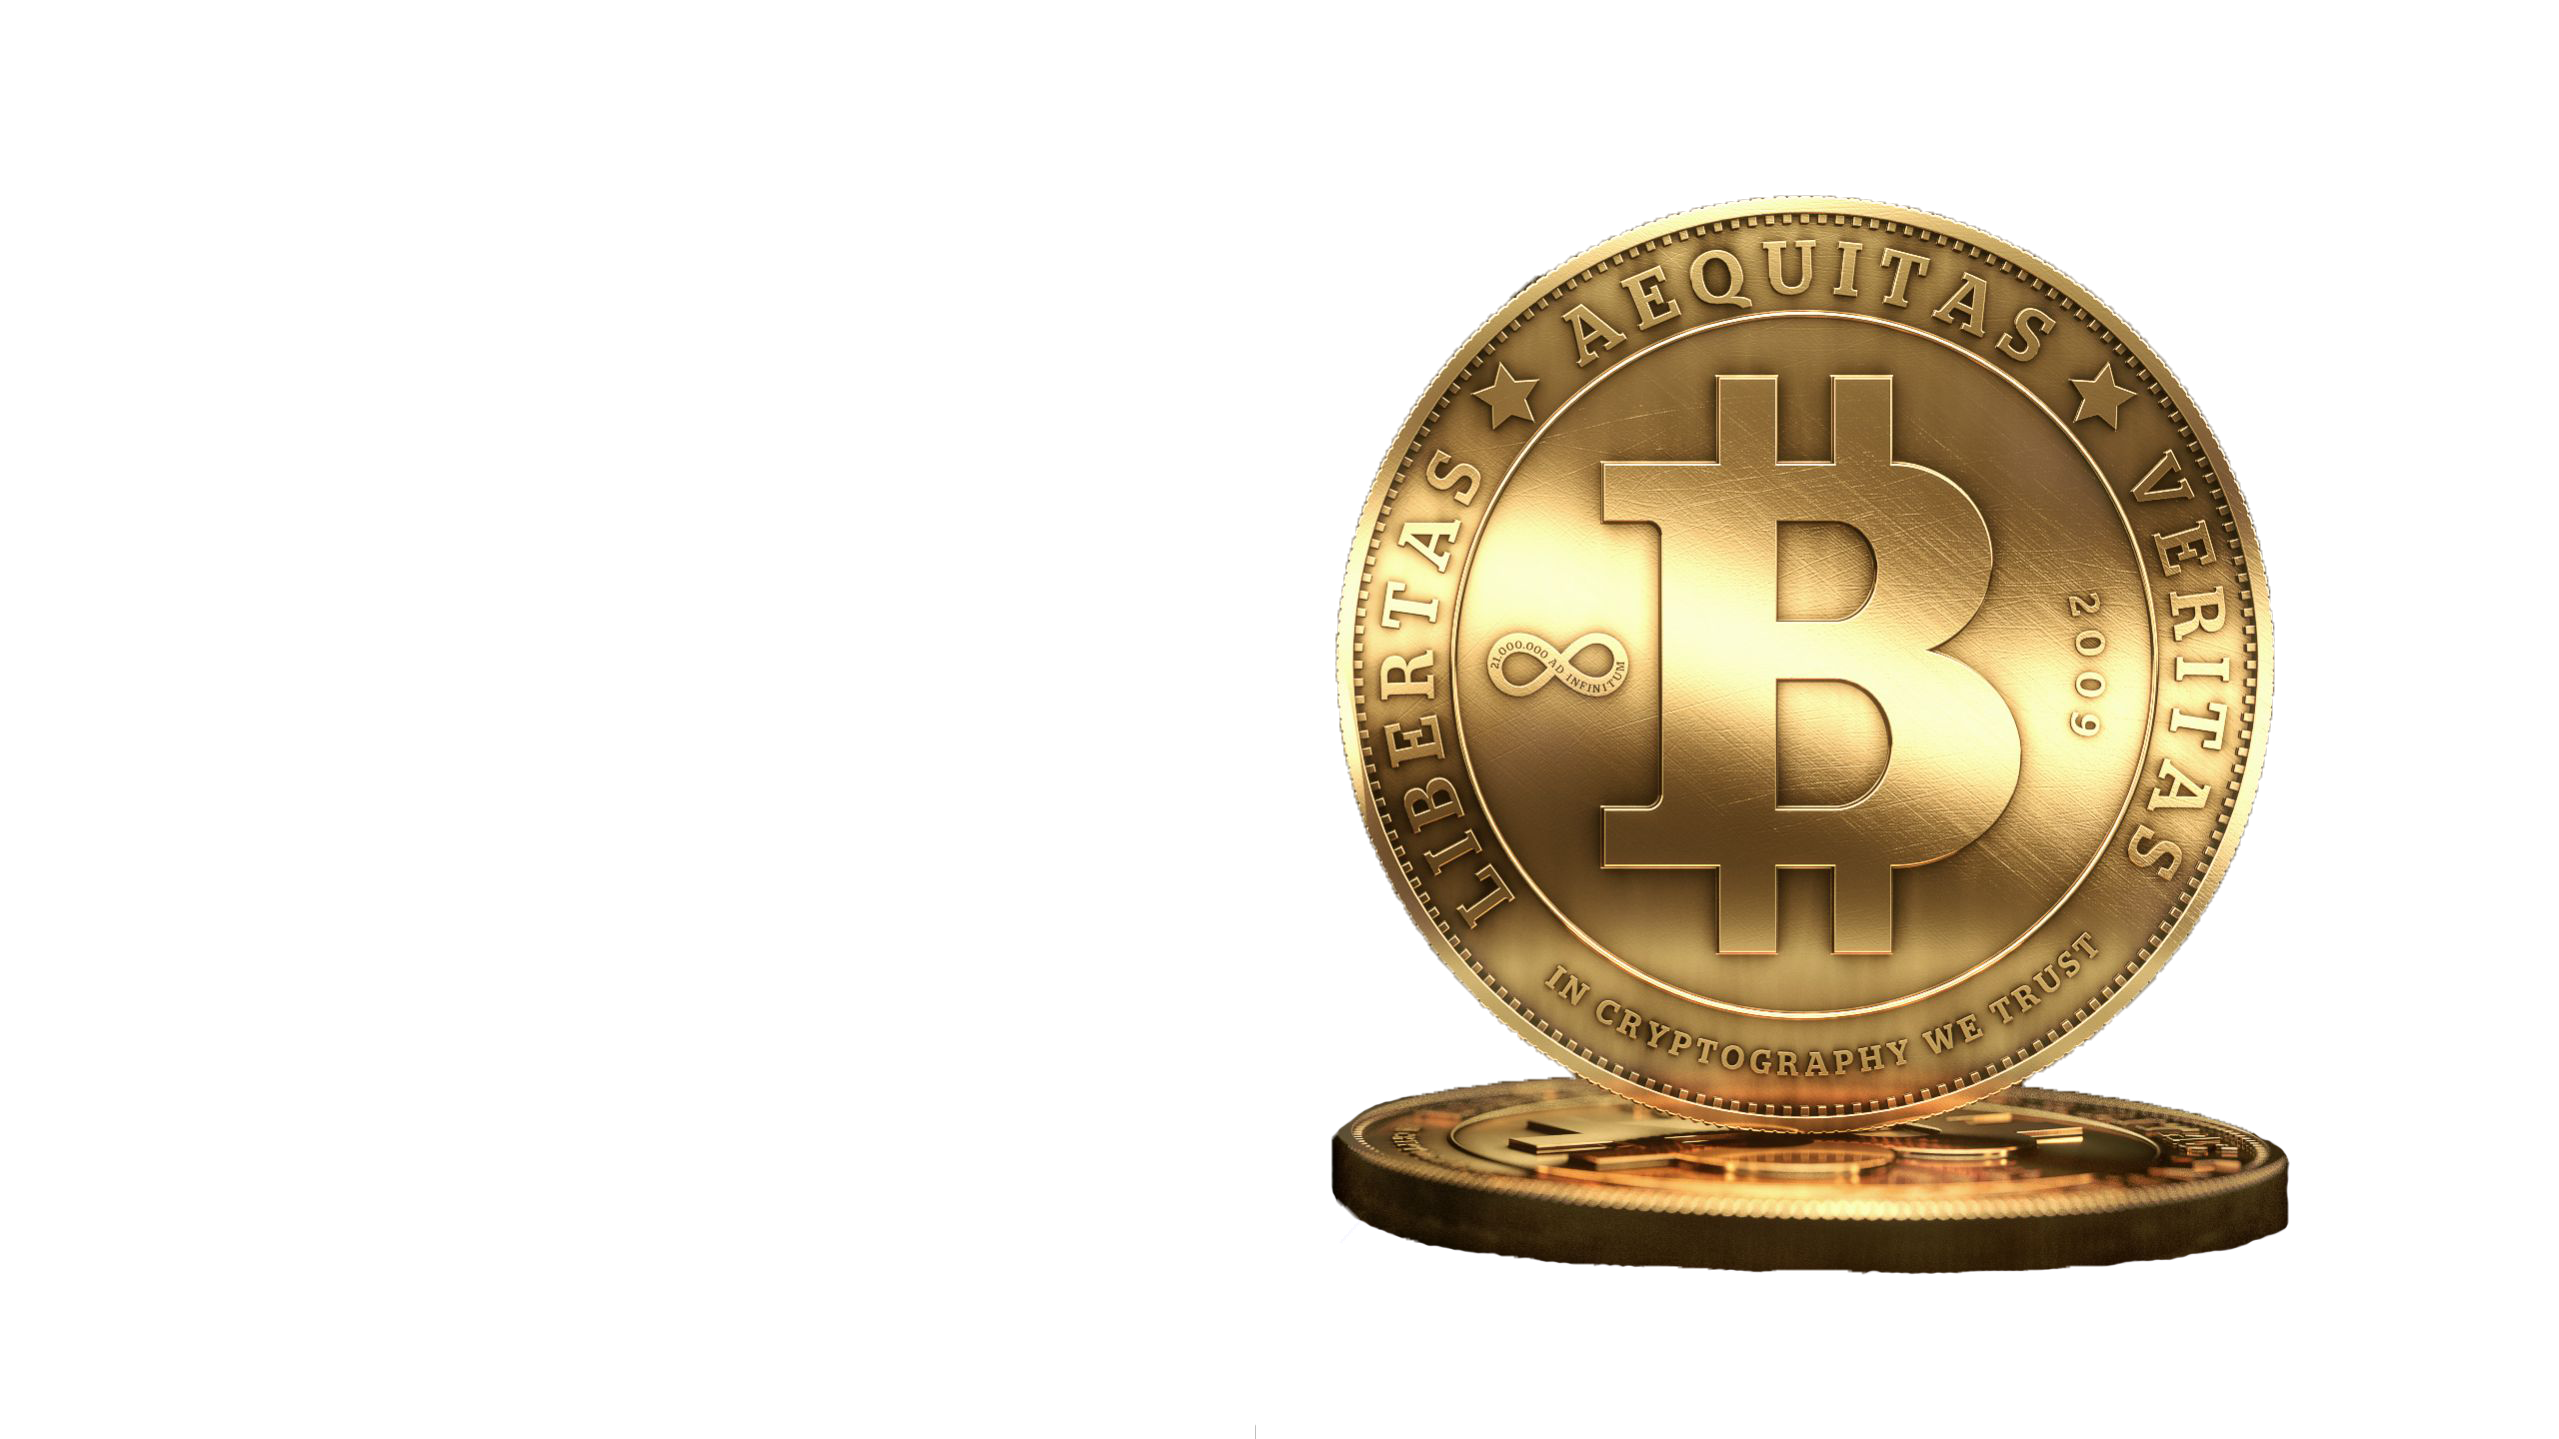 bitcoin_wallpaper_libertas_aequitas_vertas_2 copie